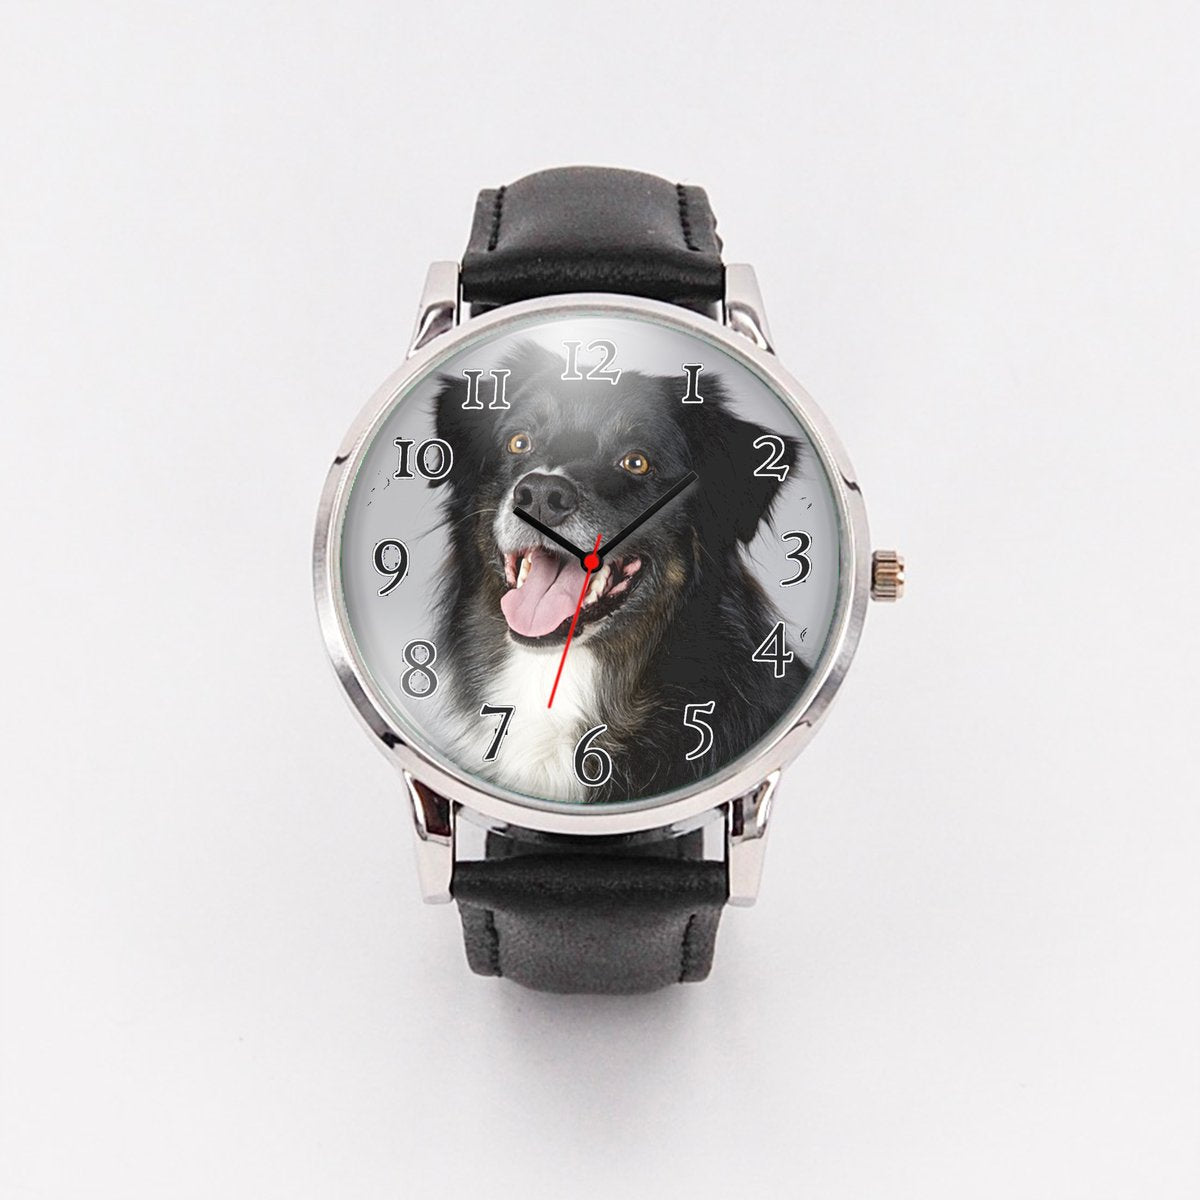 Custom Wrist Watch with a Photo of Your Pet